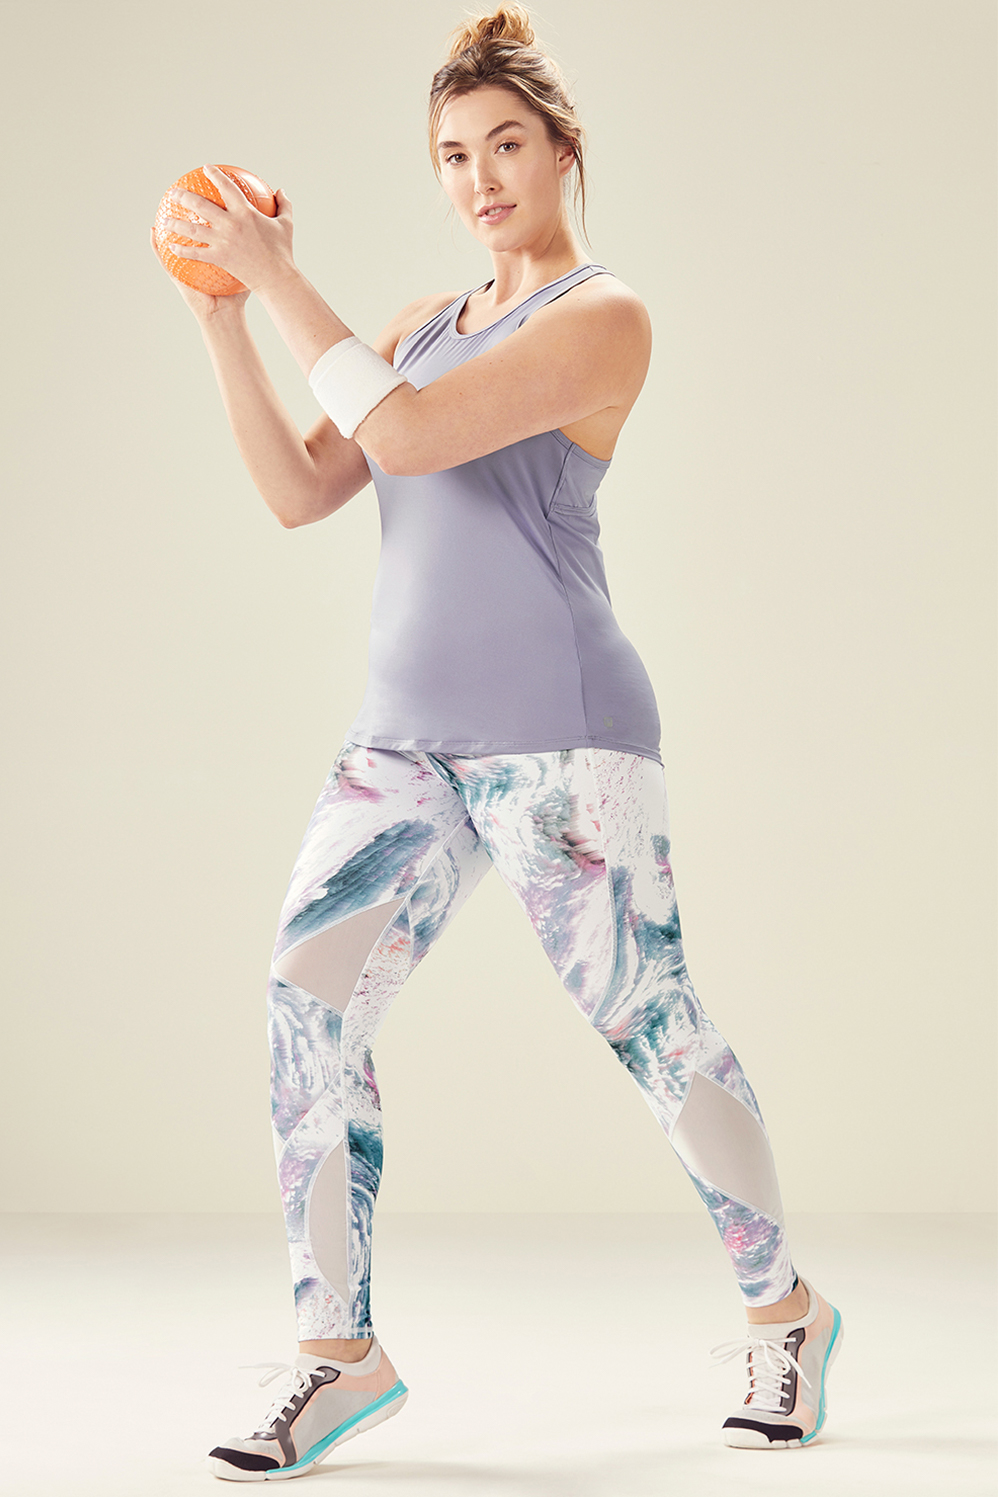 Activewear Fitness Workout Clothes Fabletics By Kate Hudson # Muebles Gaza Ocotlan